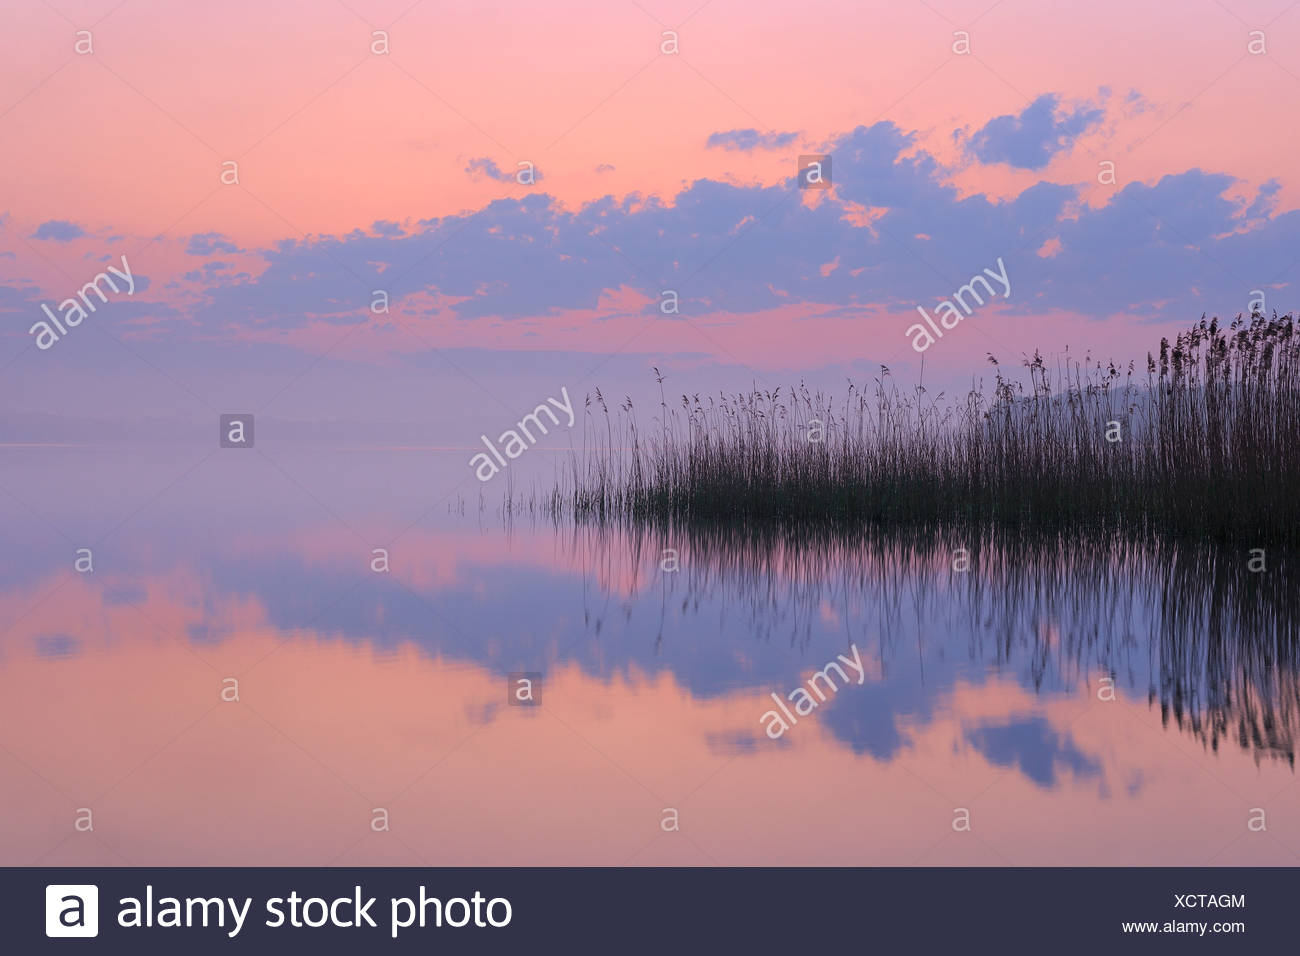 Germany, Mecklenburg-Vorpommern, Mecklenburger Seenplatte, Plau am See, View of sunrise with reeds and reflection in lake - Stock Image